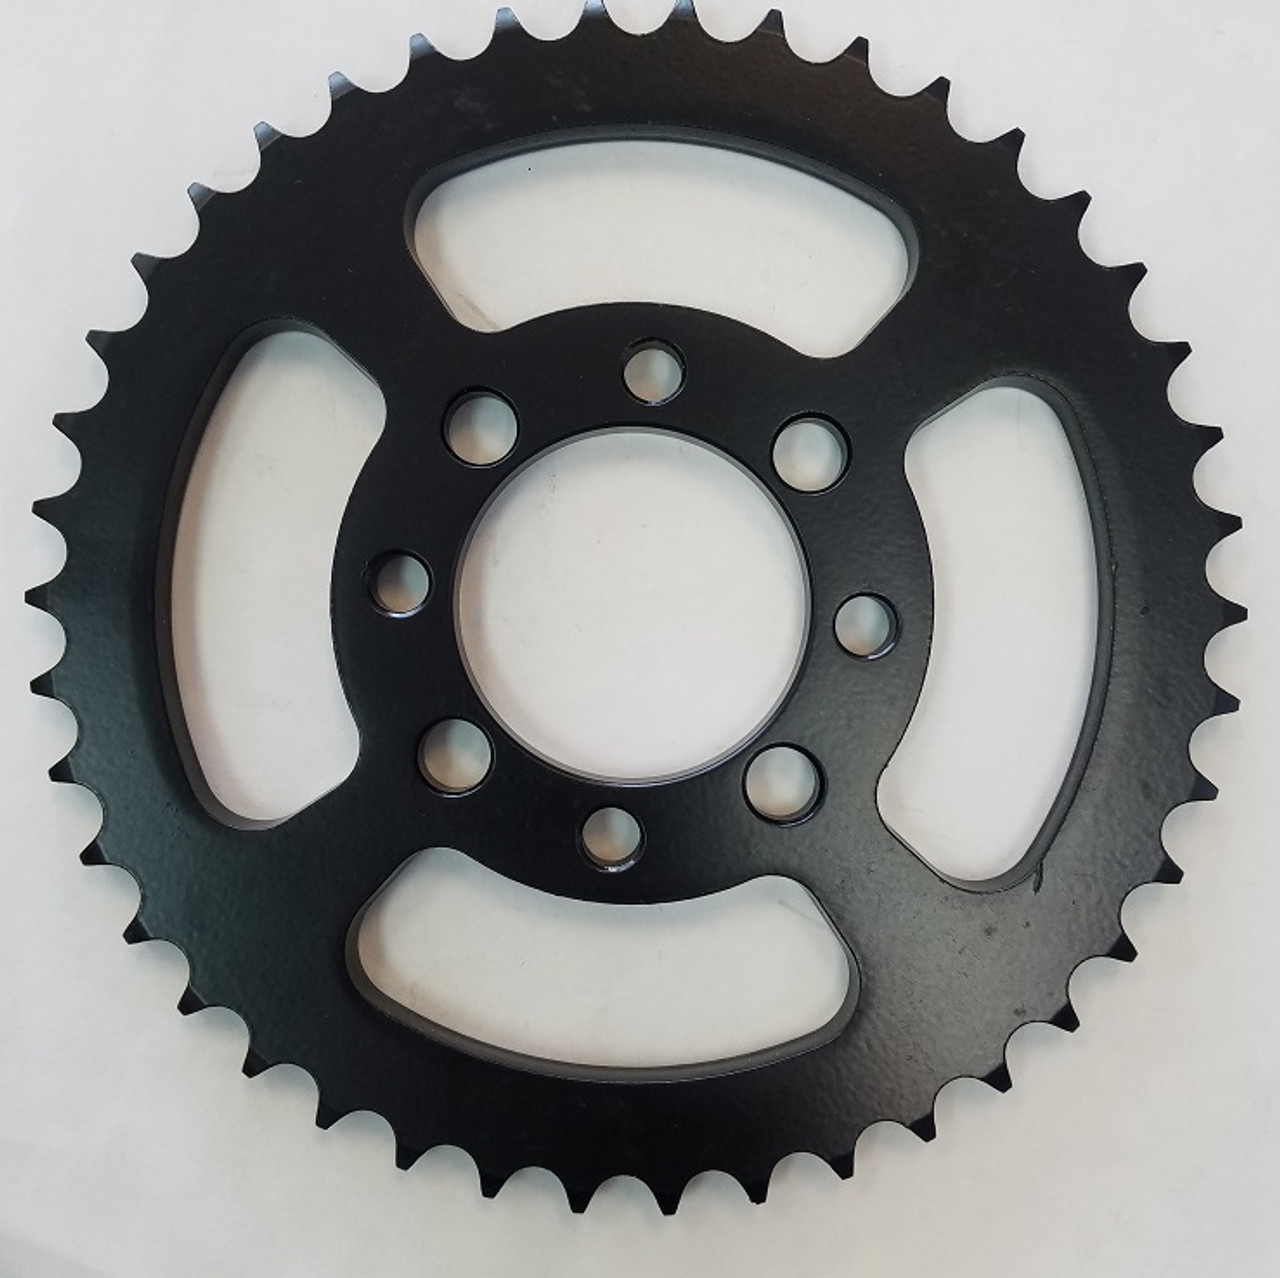 428 Taotao, Coolster and Apollo Rear Sprocket (Higher Quality) - 68mm mounting diameter